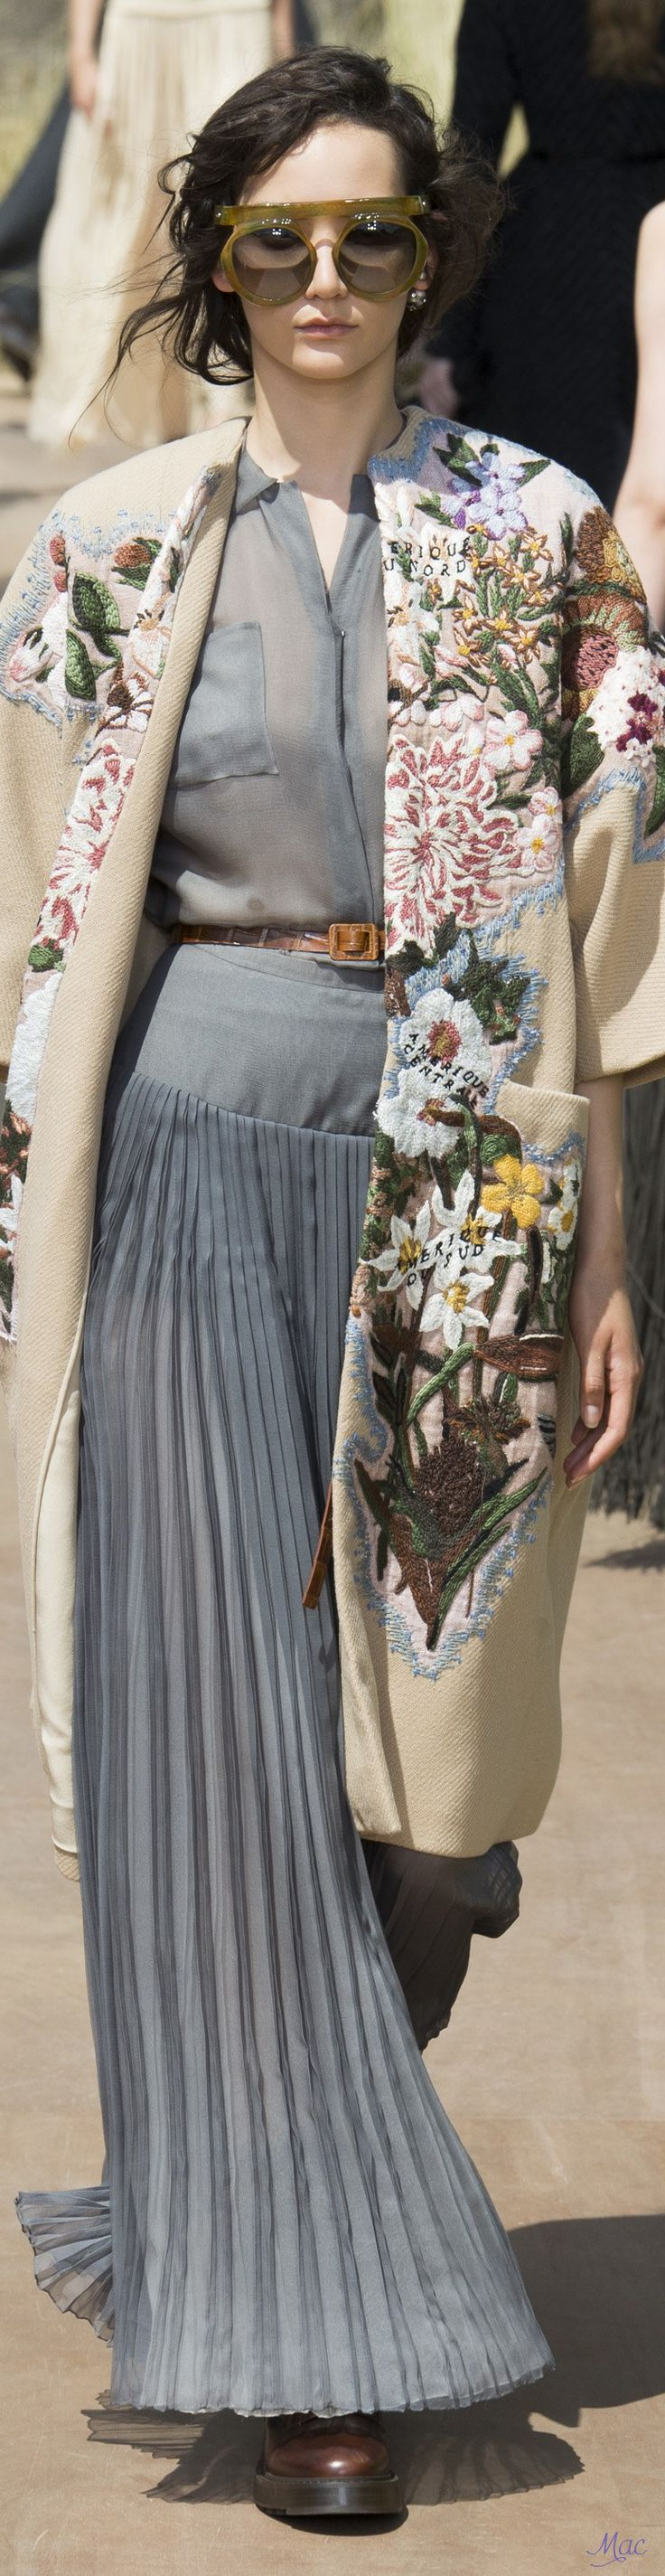 Fall 2017 Haute Couture Christian Dior OUTFIT Inspiration: | Cinderella Blue Maxi Dress + FLORAL Patterned Coat